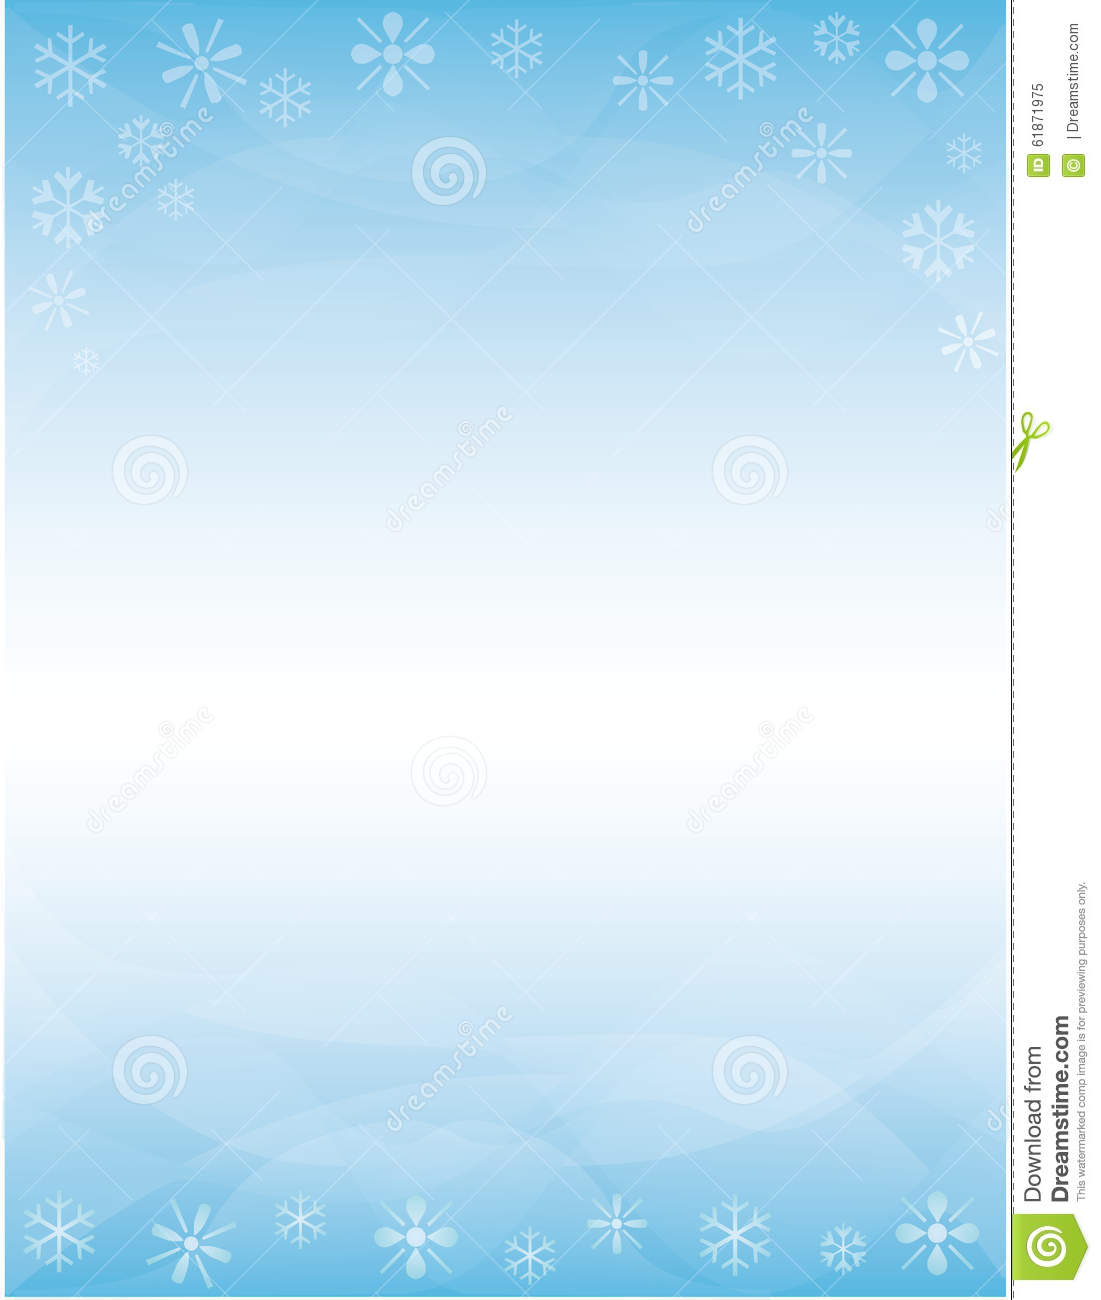 Winter brochure background stock illustration image of for Background brochure templates